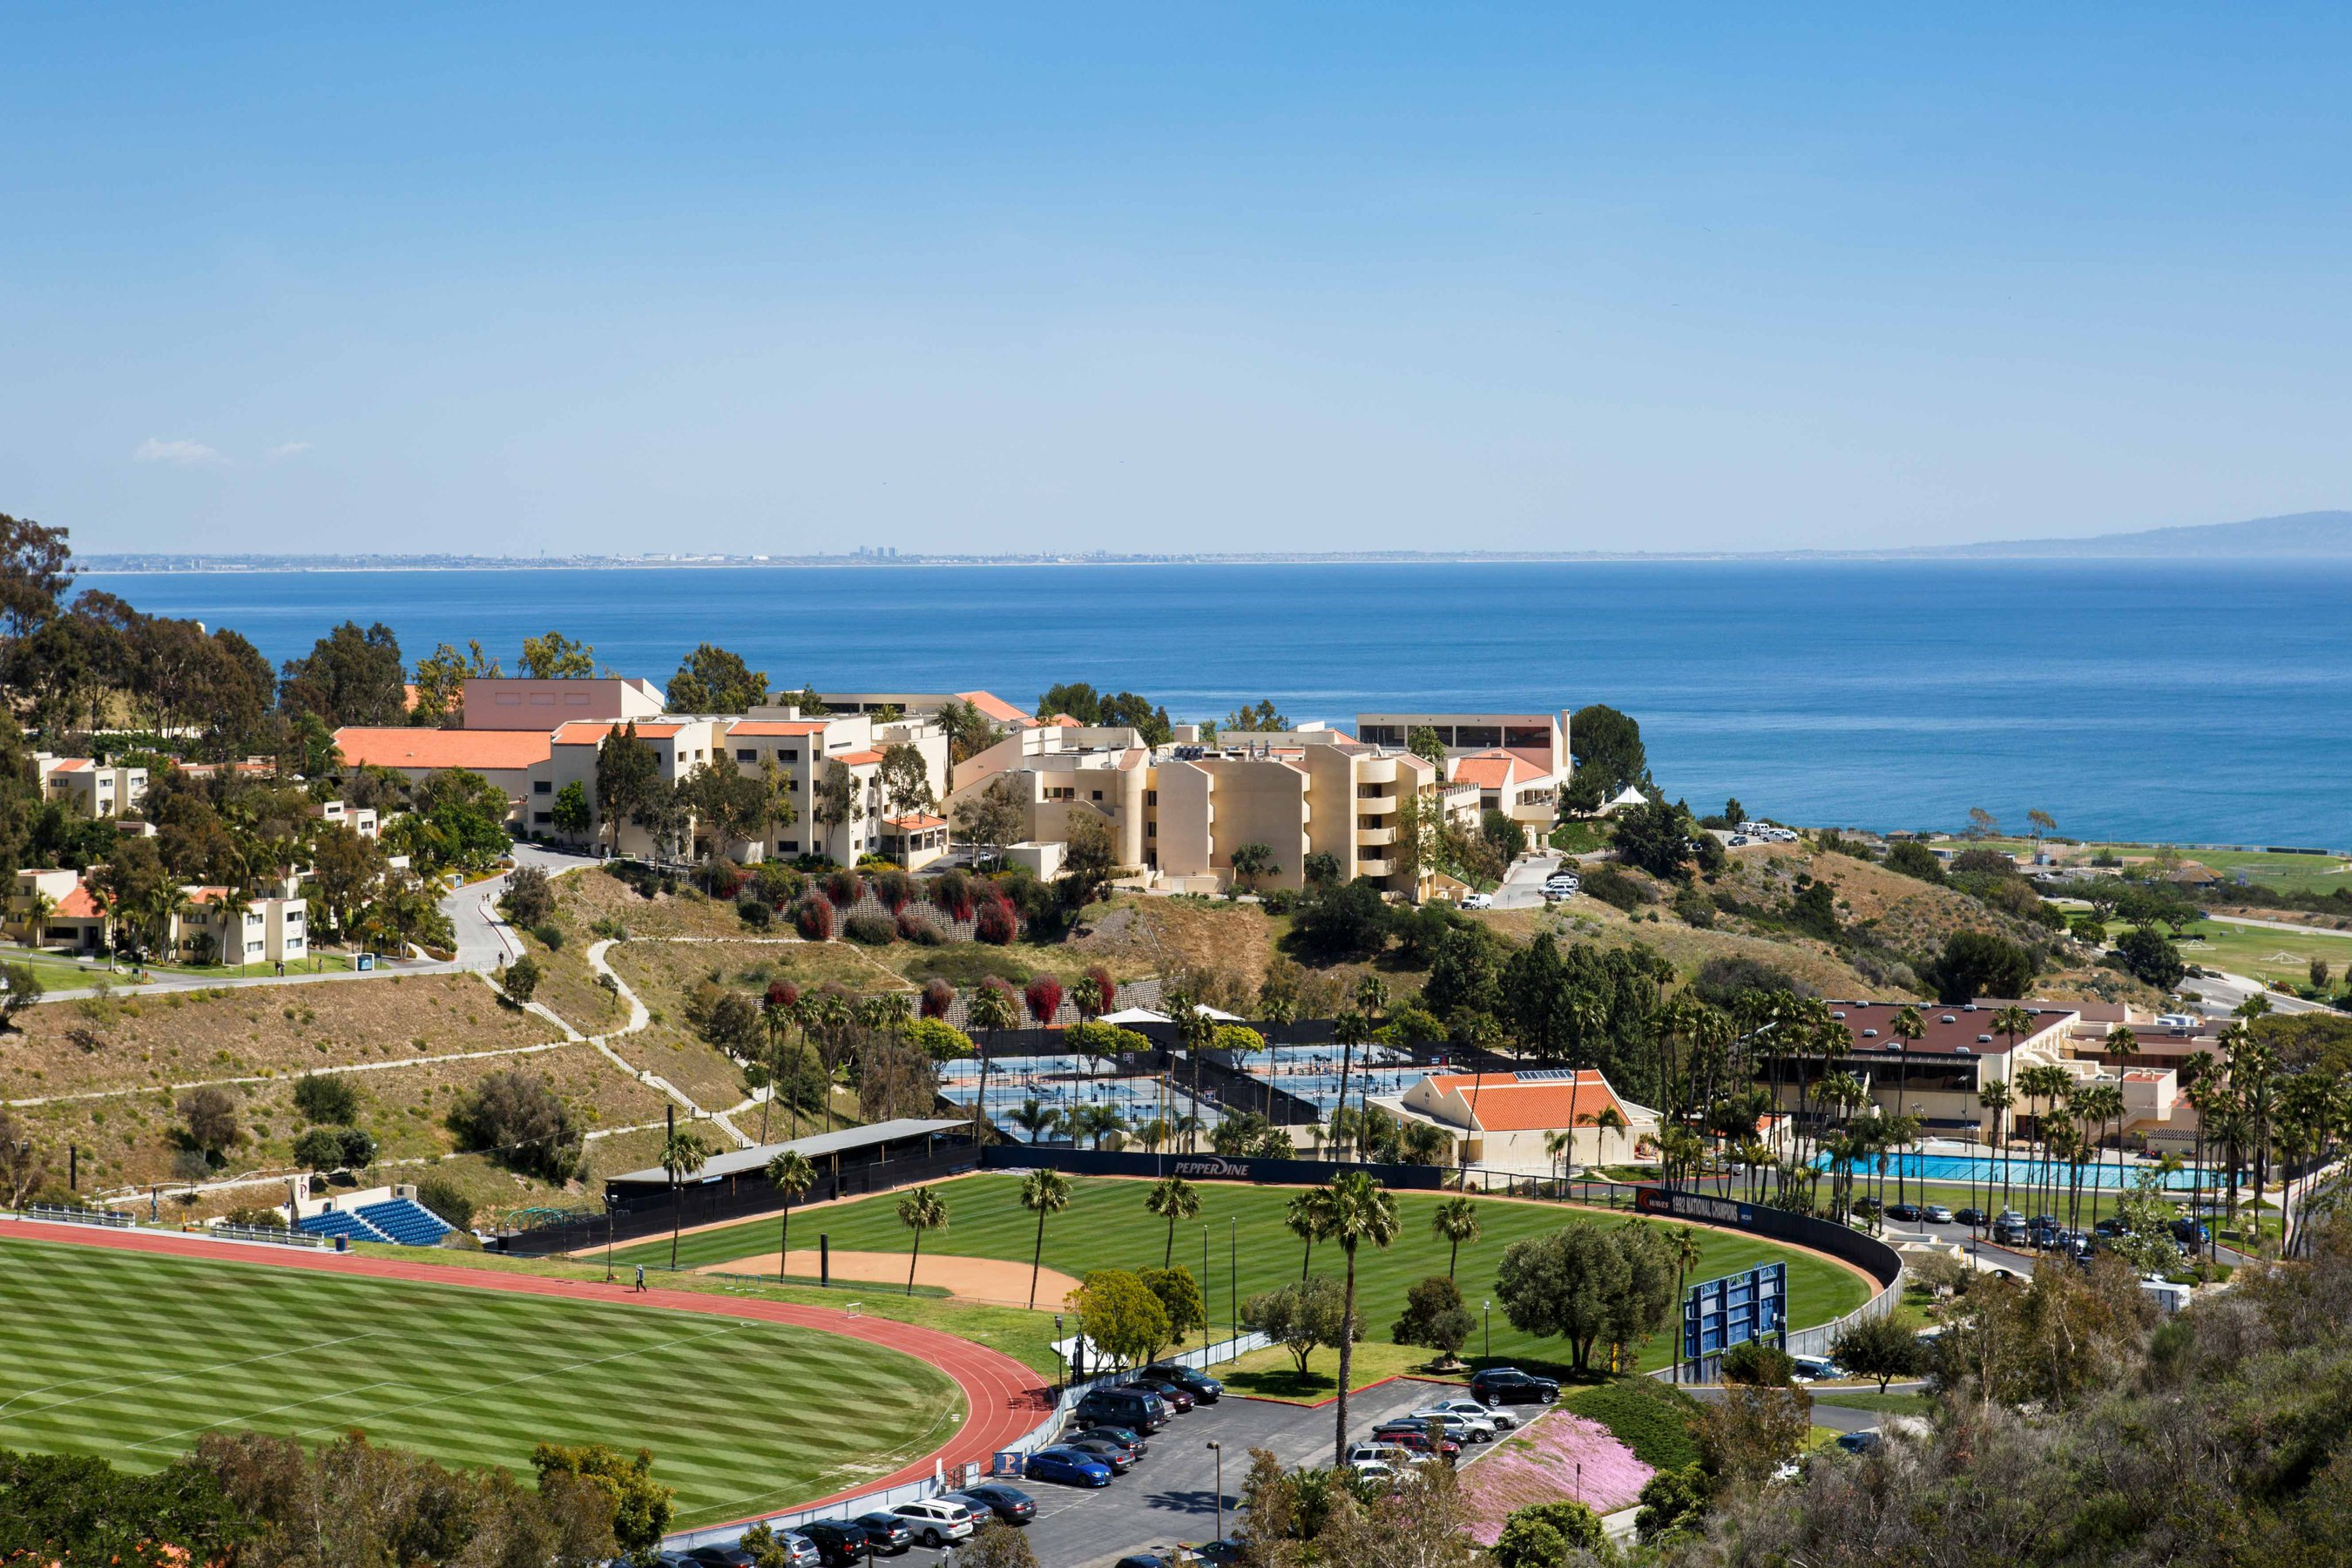 Pepperdine University sports facilities and campus buildings with the Pacific ocean and Los Angeles in the background